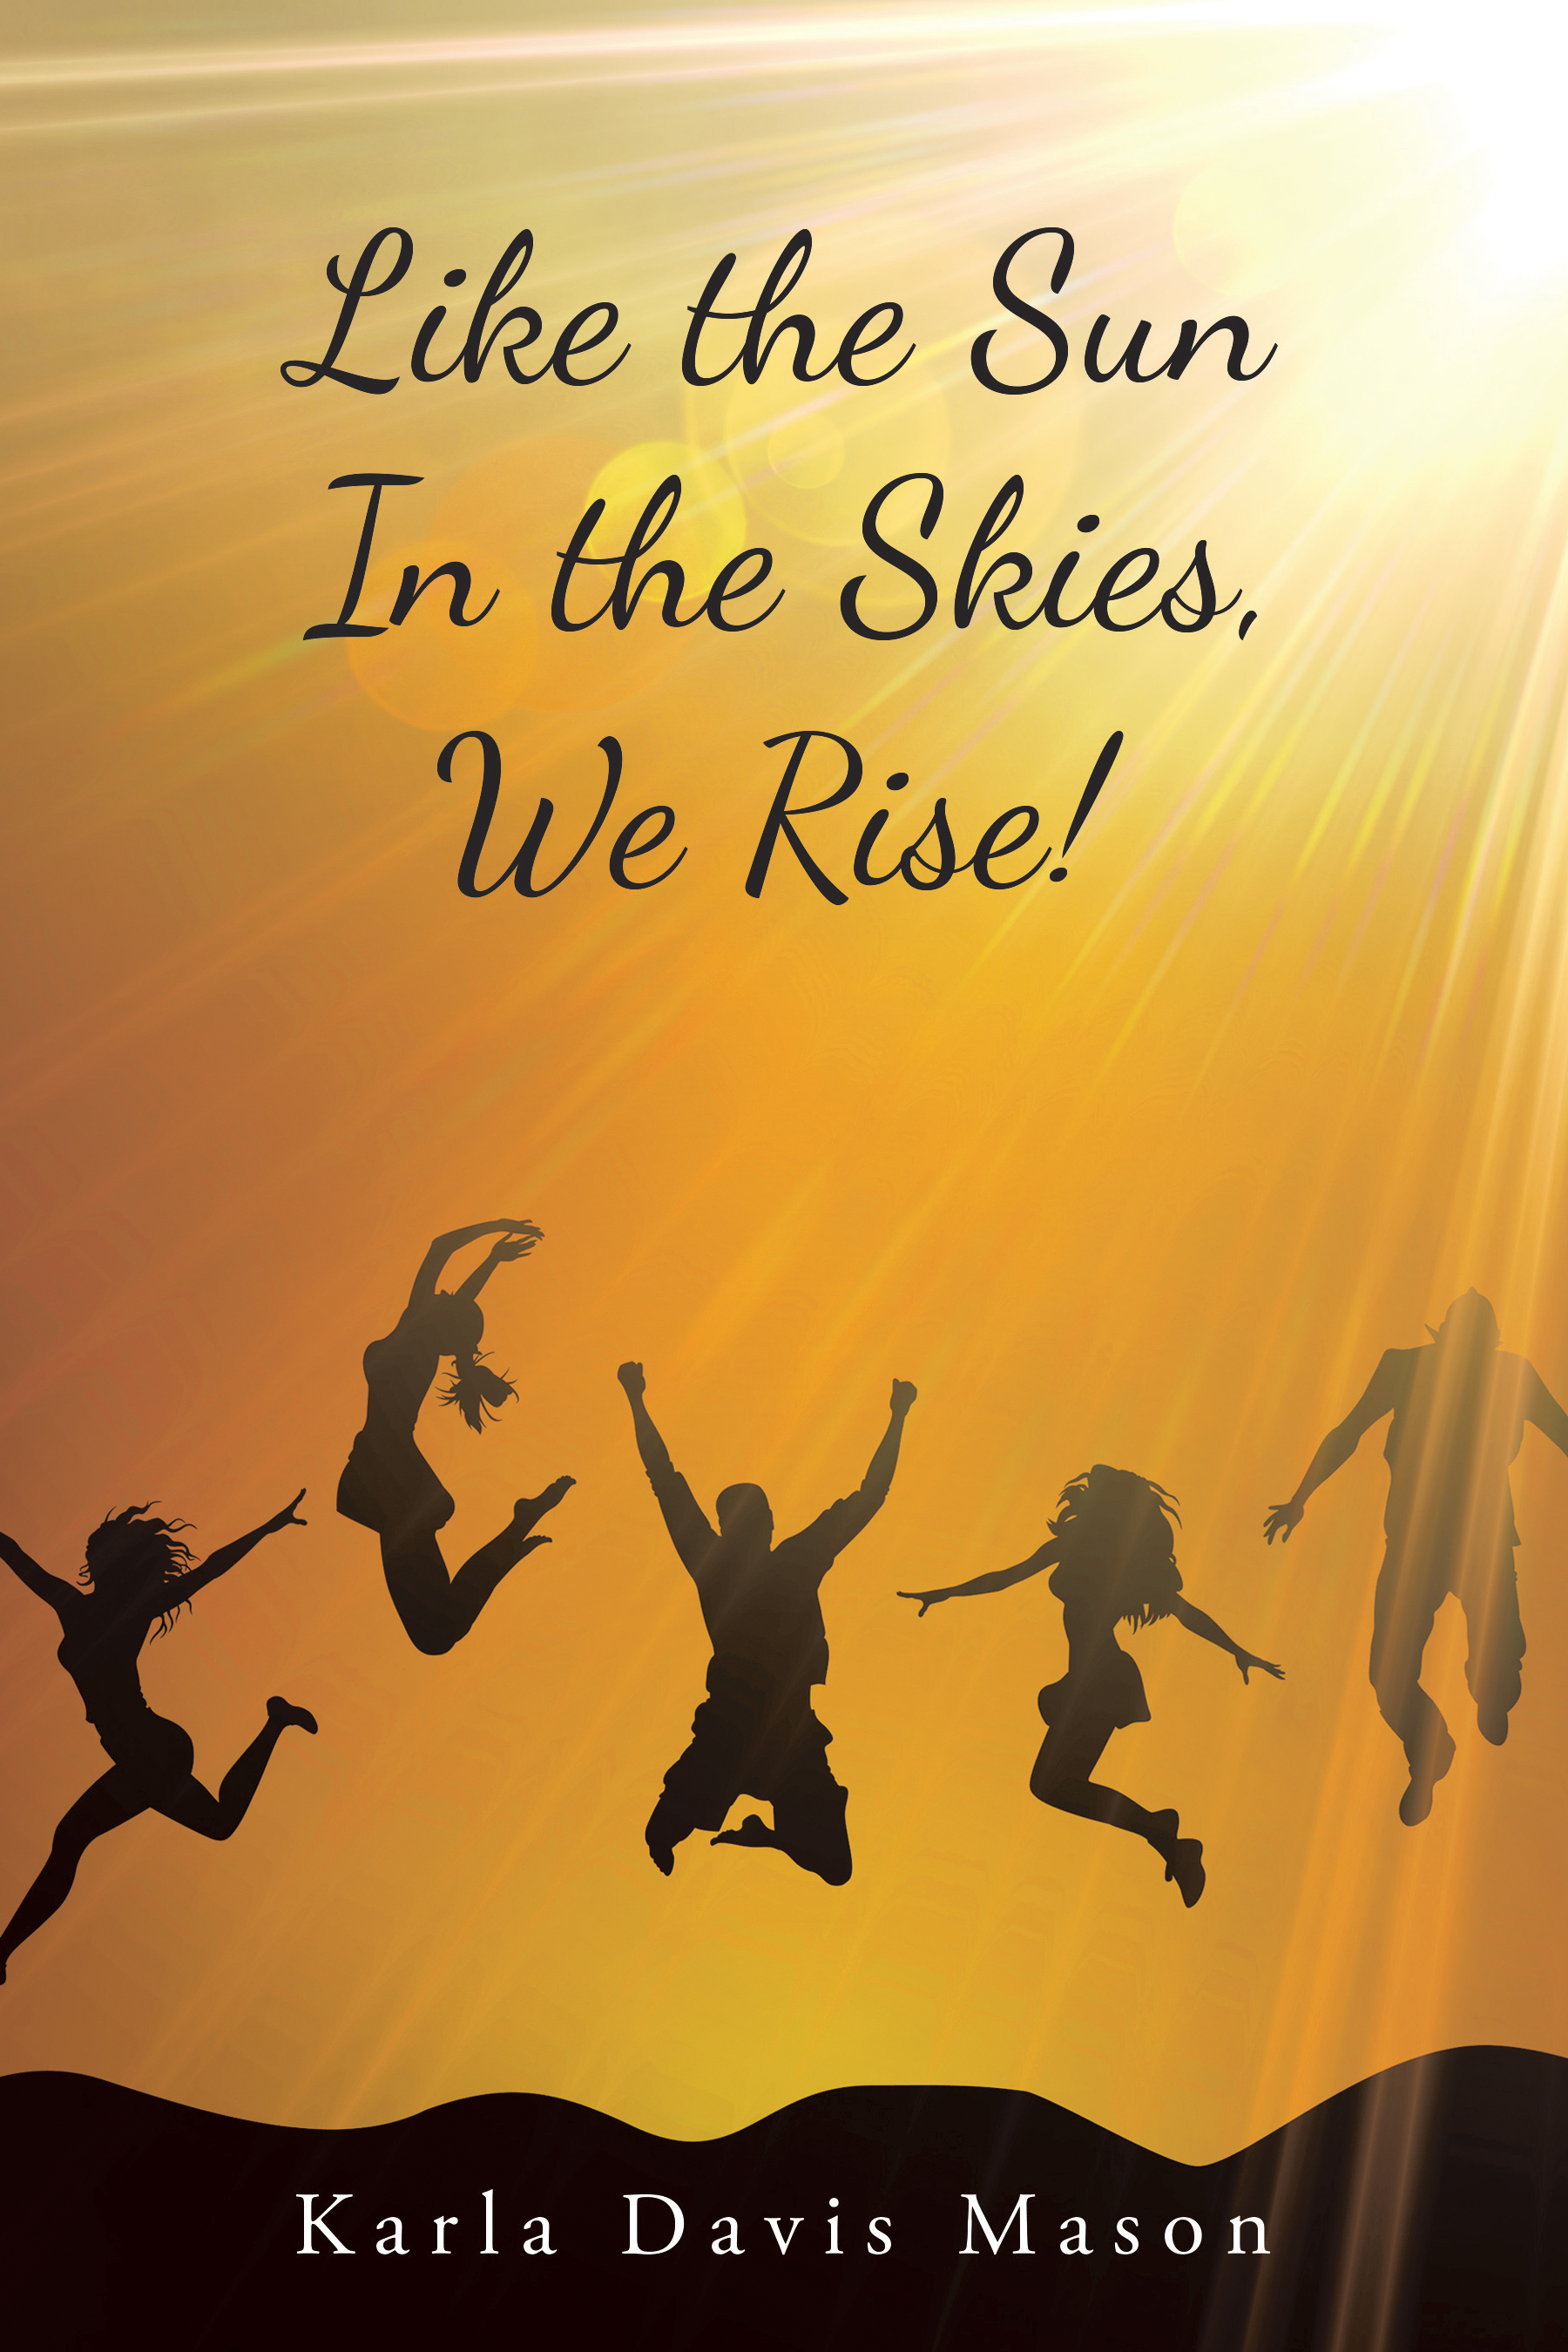 Like the Sun in the Skies, We Rise!